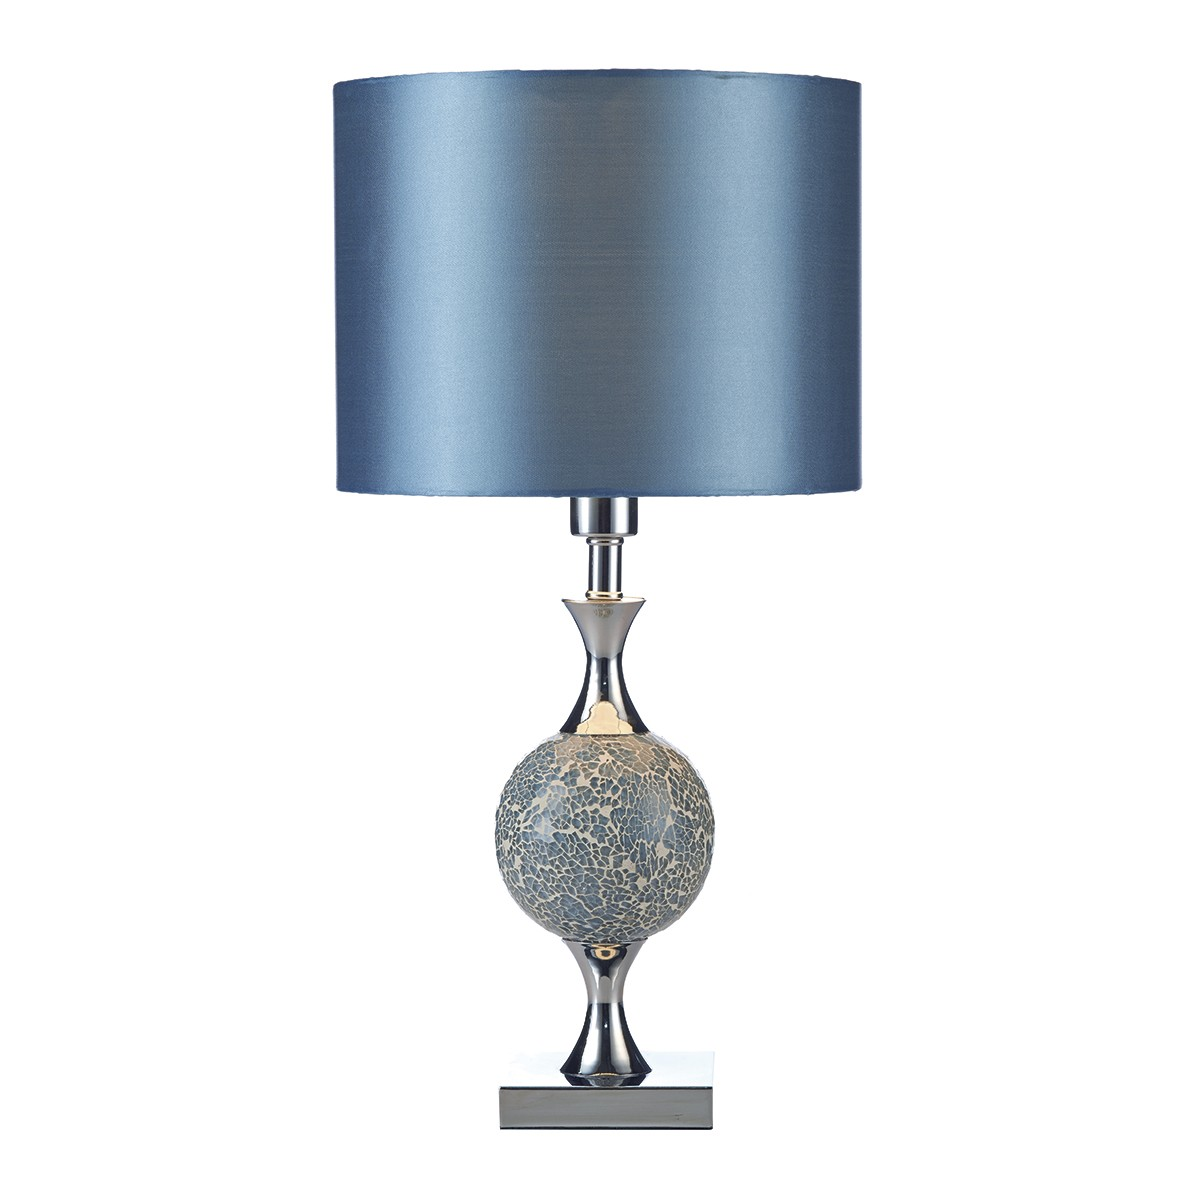 Elsa Table Lamp Blue Mosaic Complete With Shade from Franks Complete House Furnishers